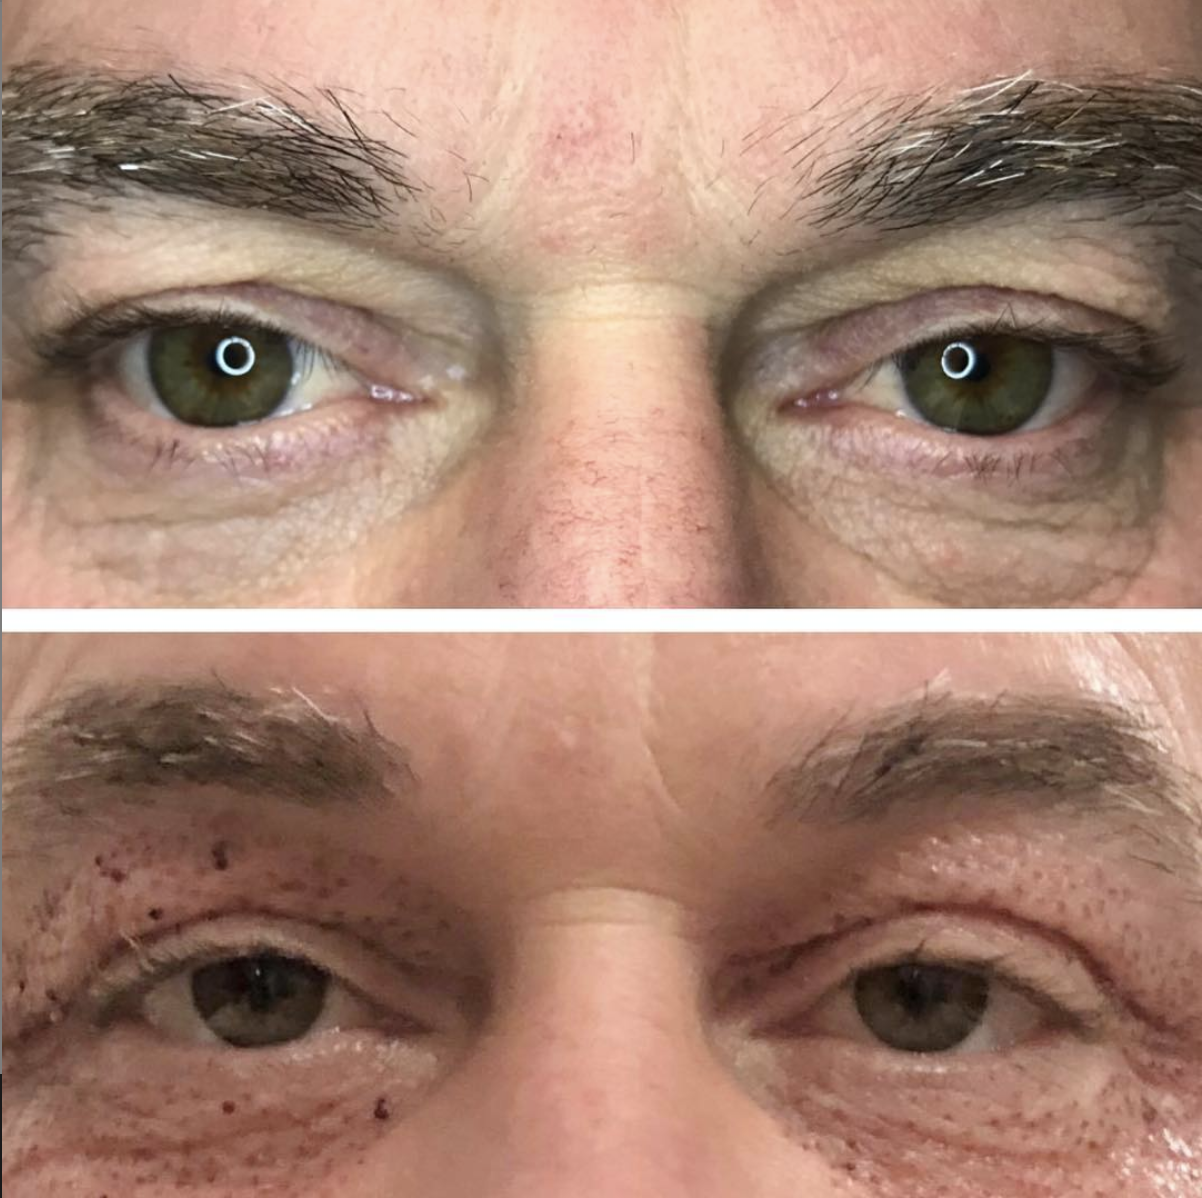 One treatment, 4 days post-treatment. Eyelid lift and fine-lines treatment around the eyes. Client will continue to see improvements until about 2-3 months post-treatment.